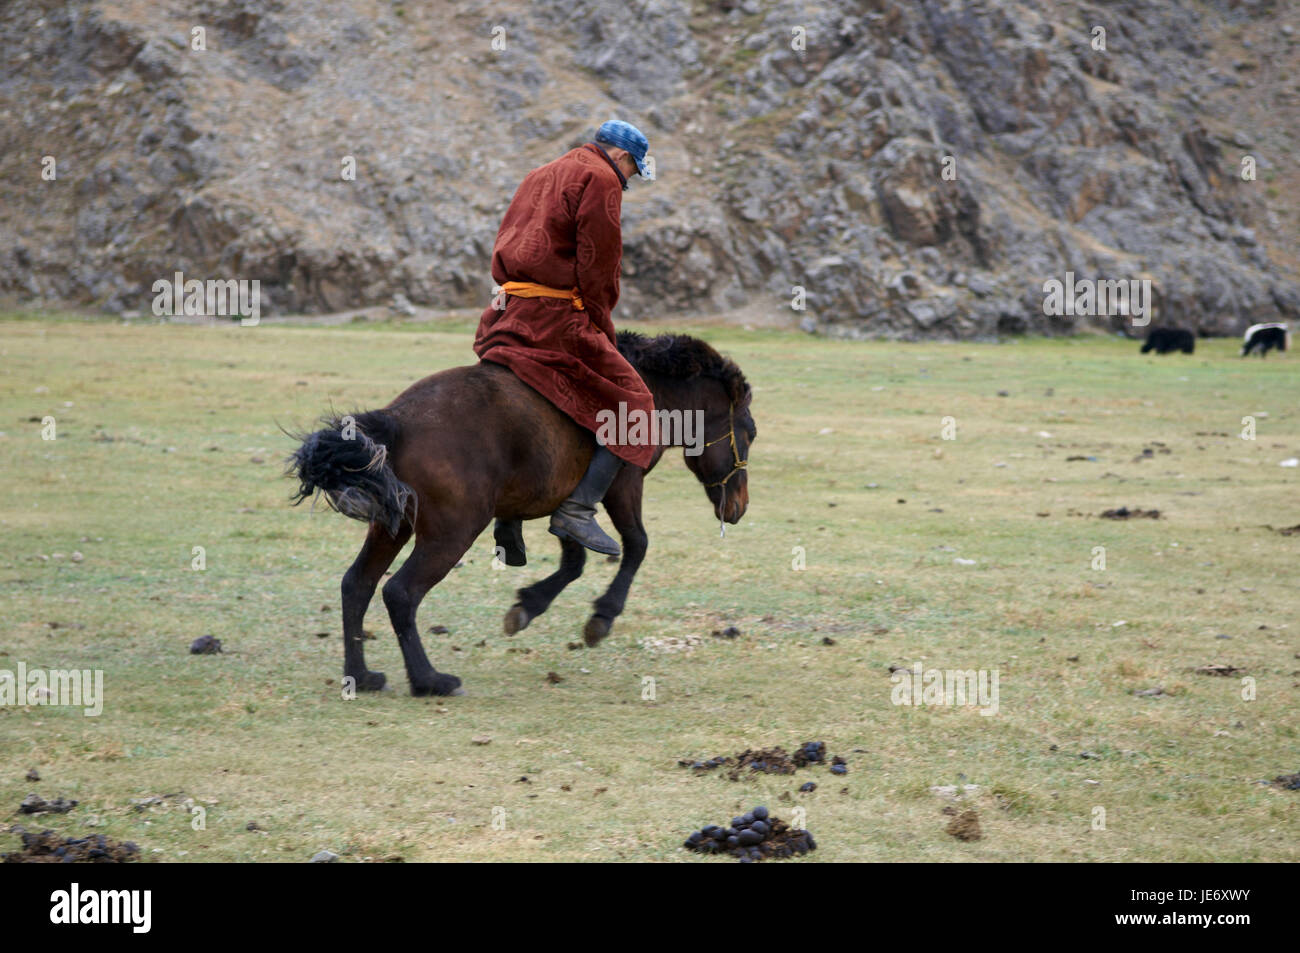 Mongolia, Central Asia, Ovorkhangai province, historical Orkhon valley, UNESCO world heritage, nomad, bleed, horse Stock Photo